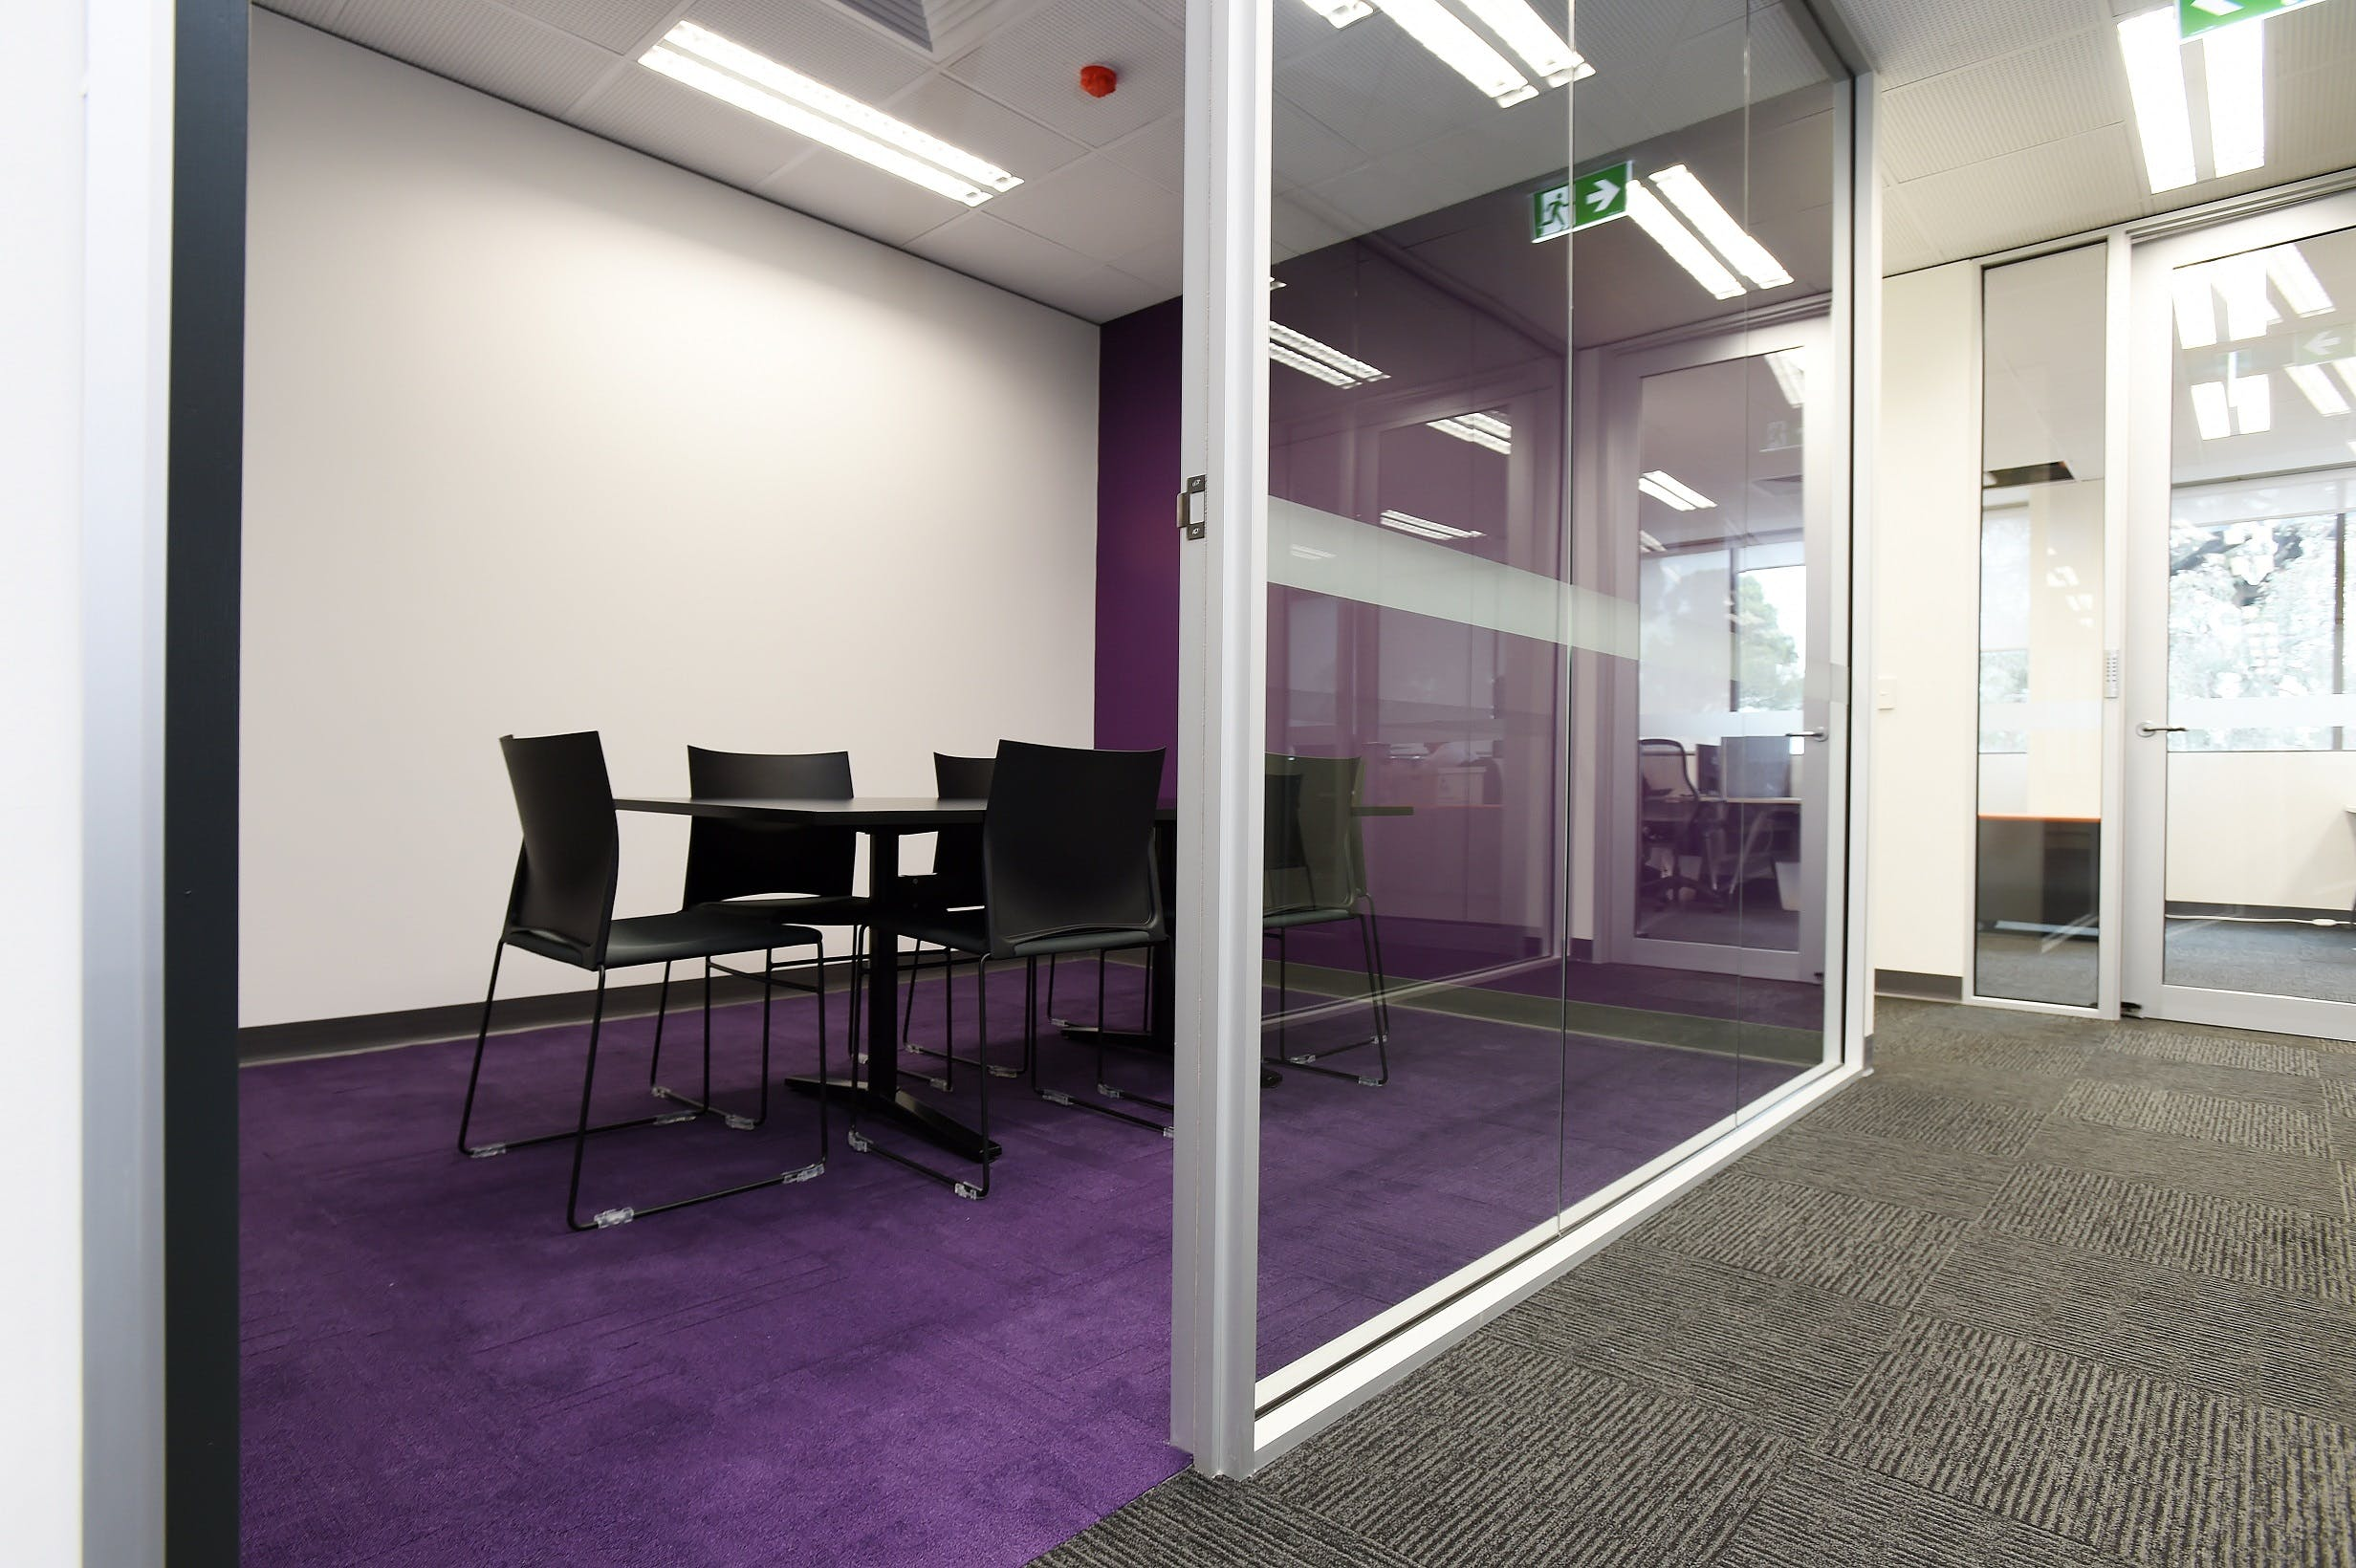 Meeting Room 5, meeting room at CO-HAB Tonsley, image 1